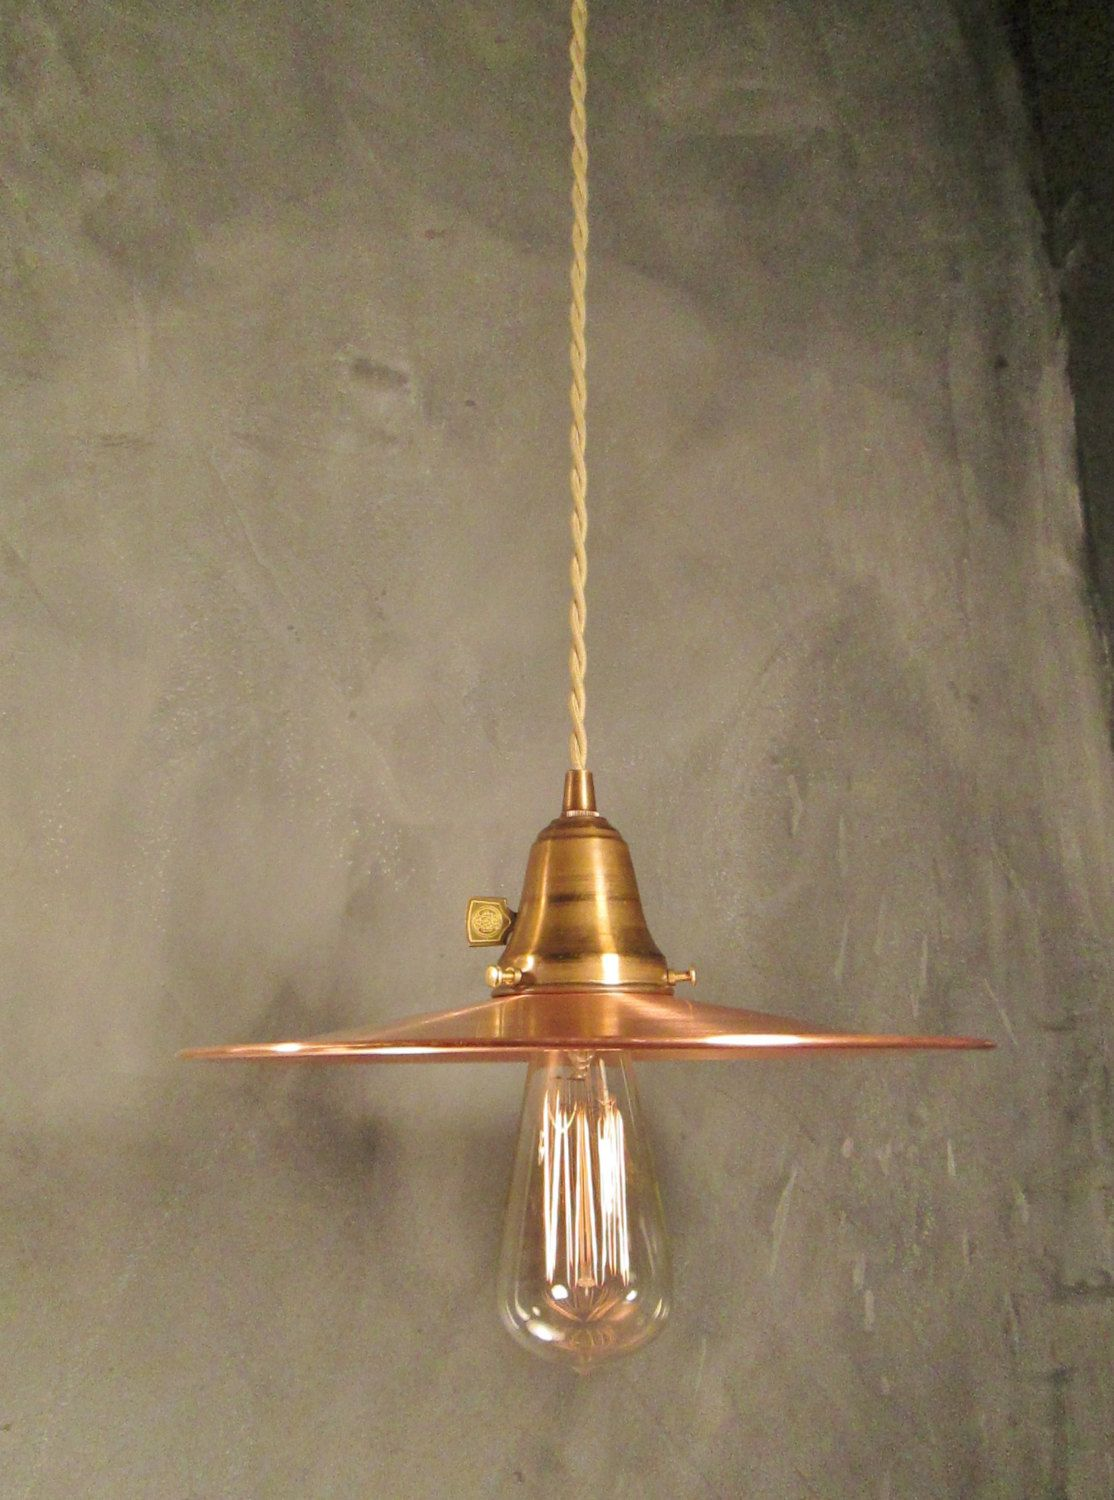 Vintage Industrial Pendant Lamp With Flat Shade Multiple Options Lighting Fixture Using On Wiring Ceiling Light Reproduction 1125 Custom Spun From Solid Copper Holder Of Unfinished Brass